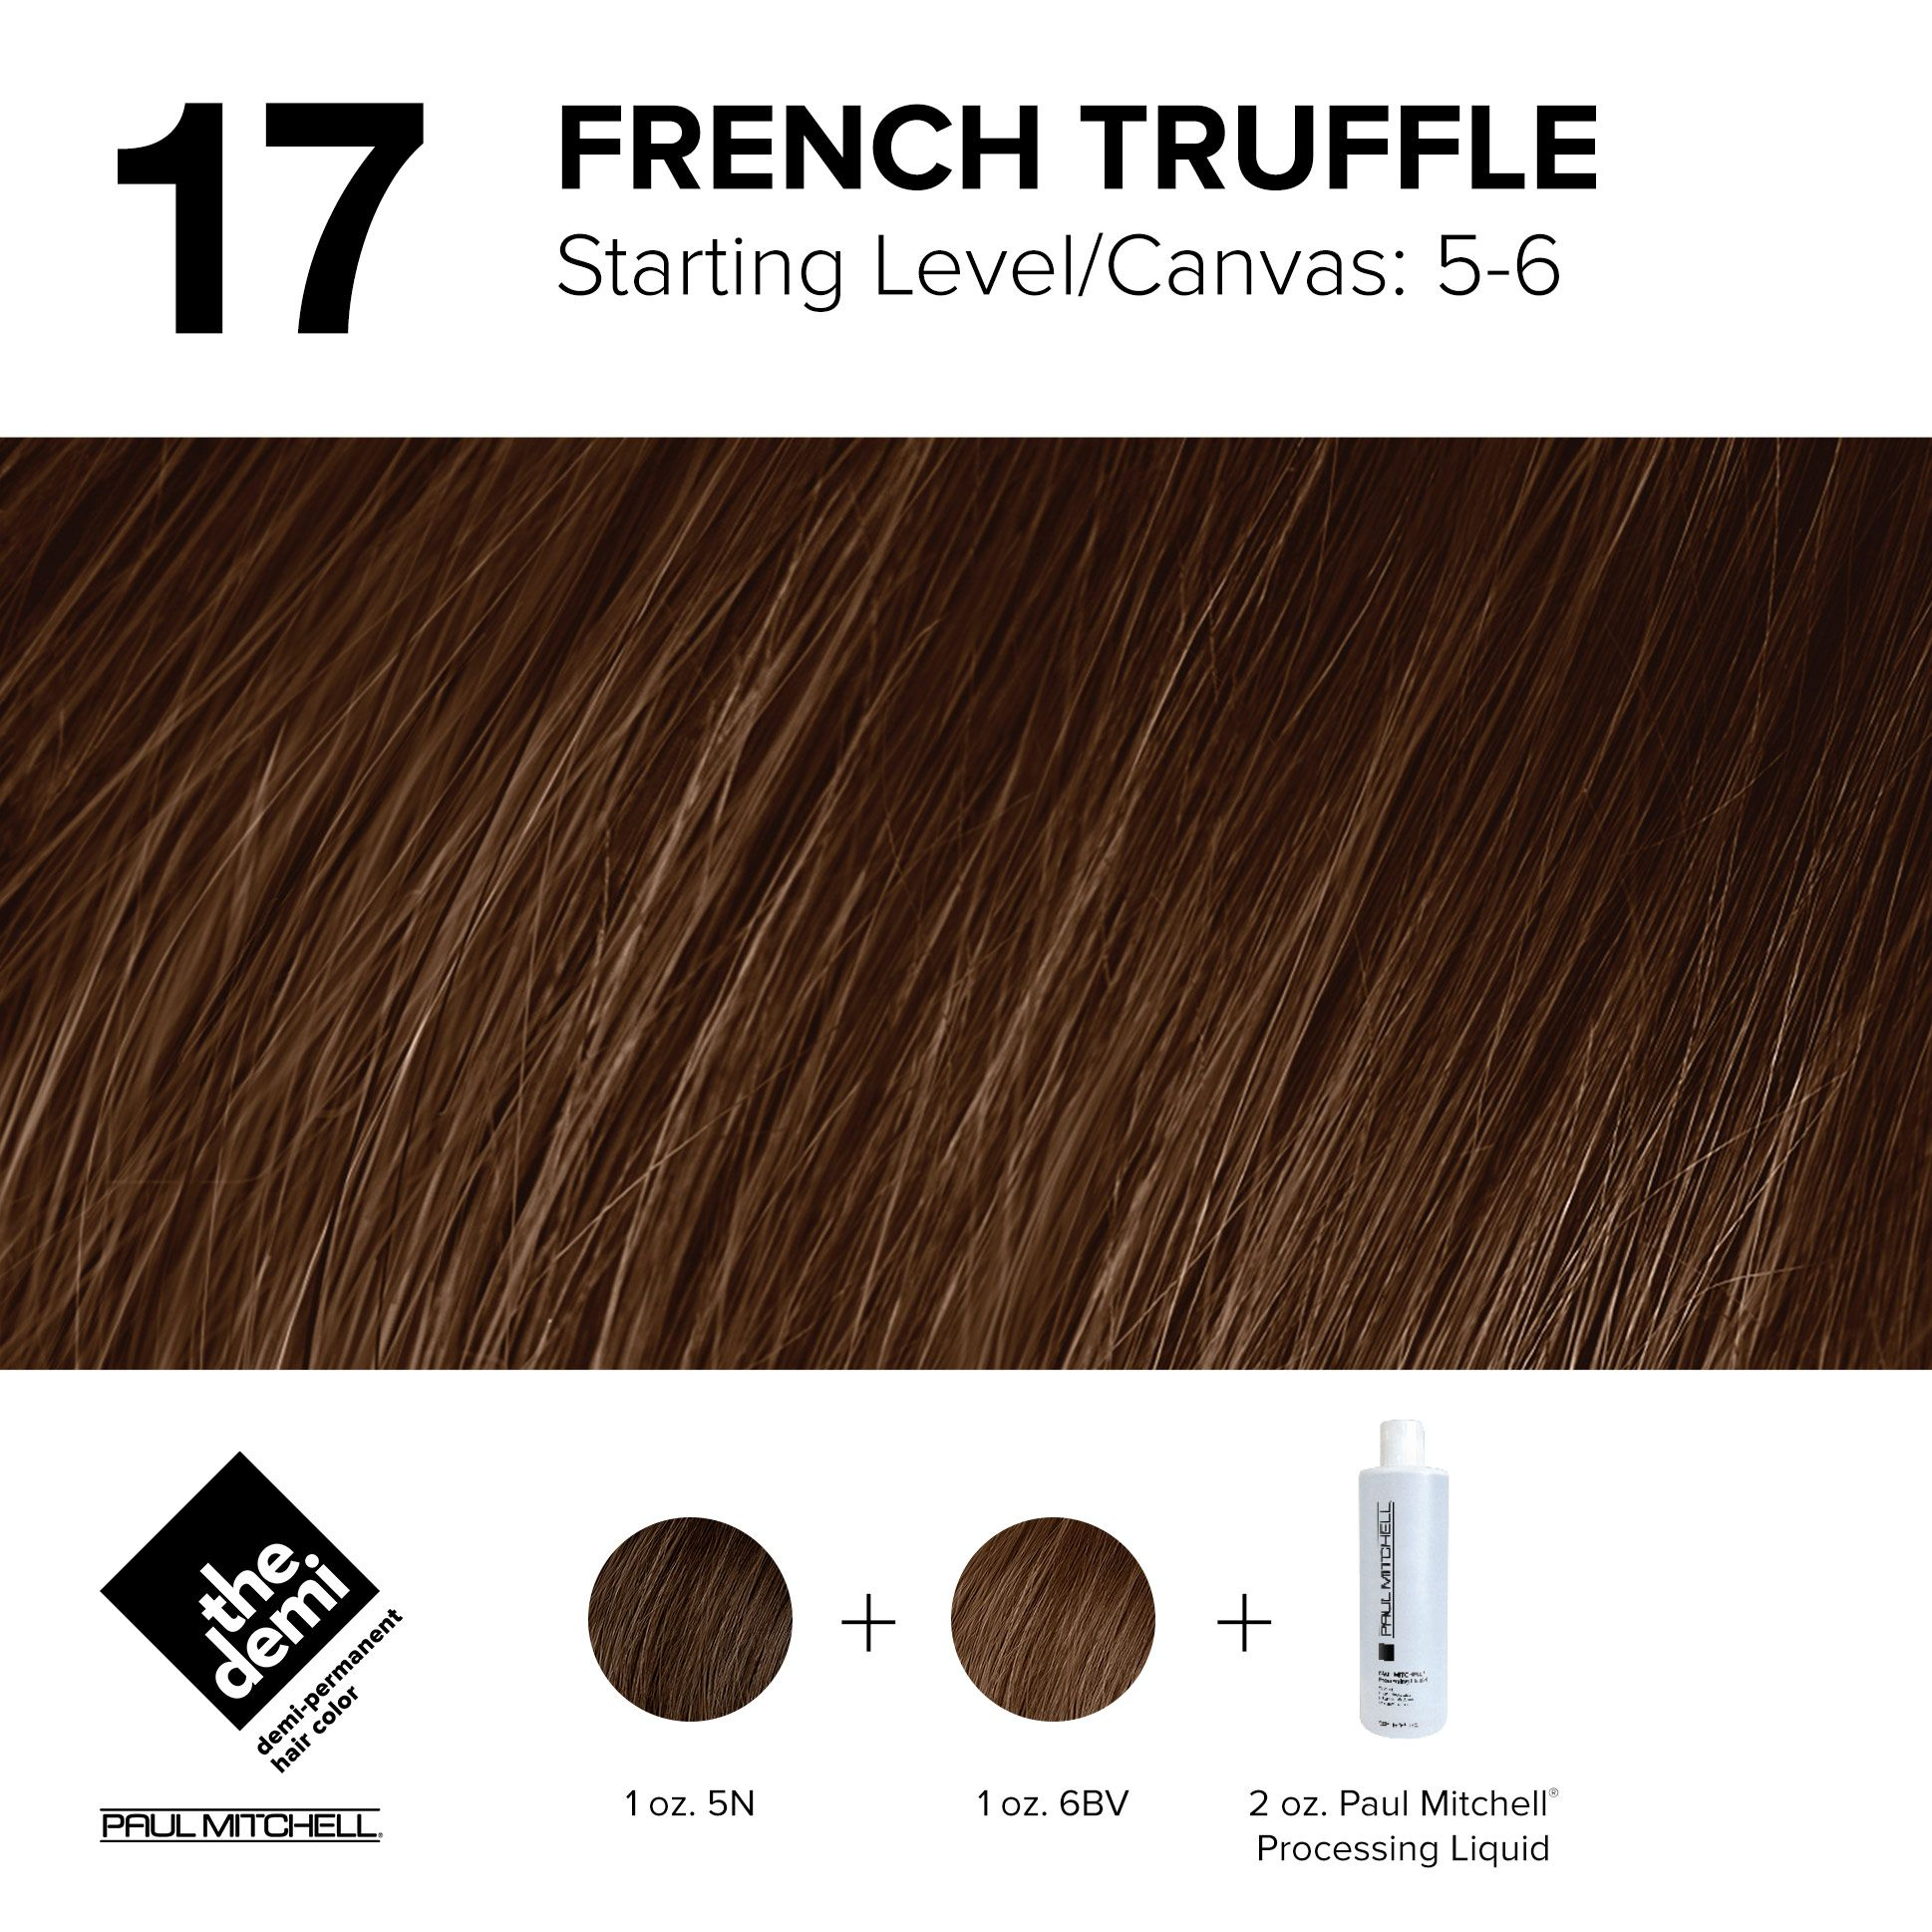 17 French Truffle Paul Mitchell Color Paul Mitchell Color Chart